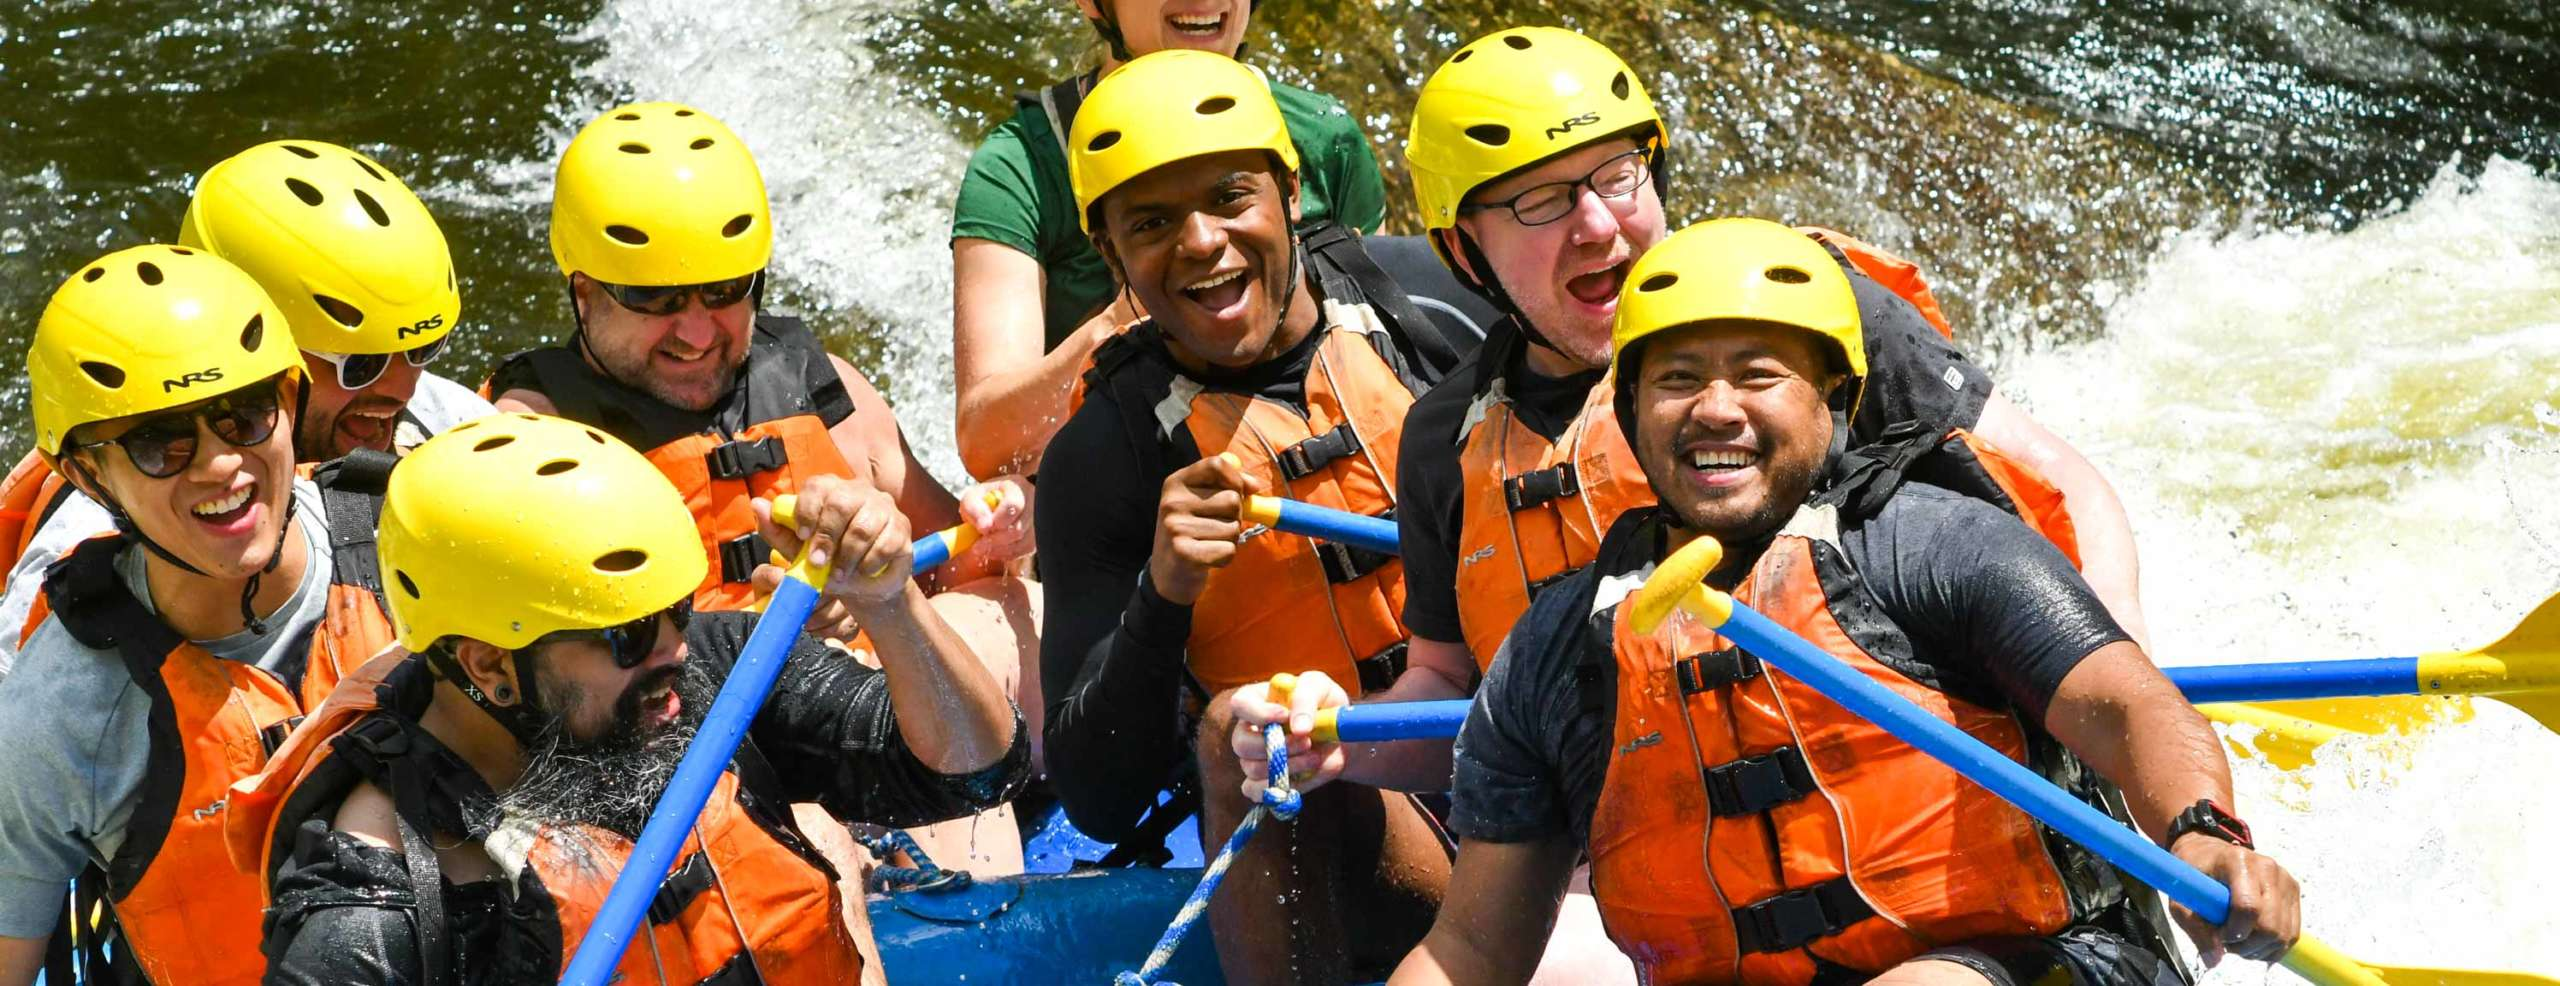 Group of smiling excited rafters rafting down a river